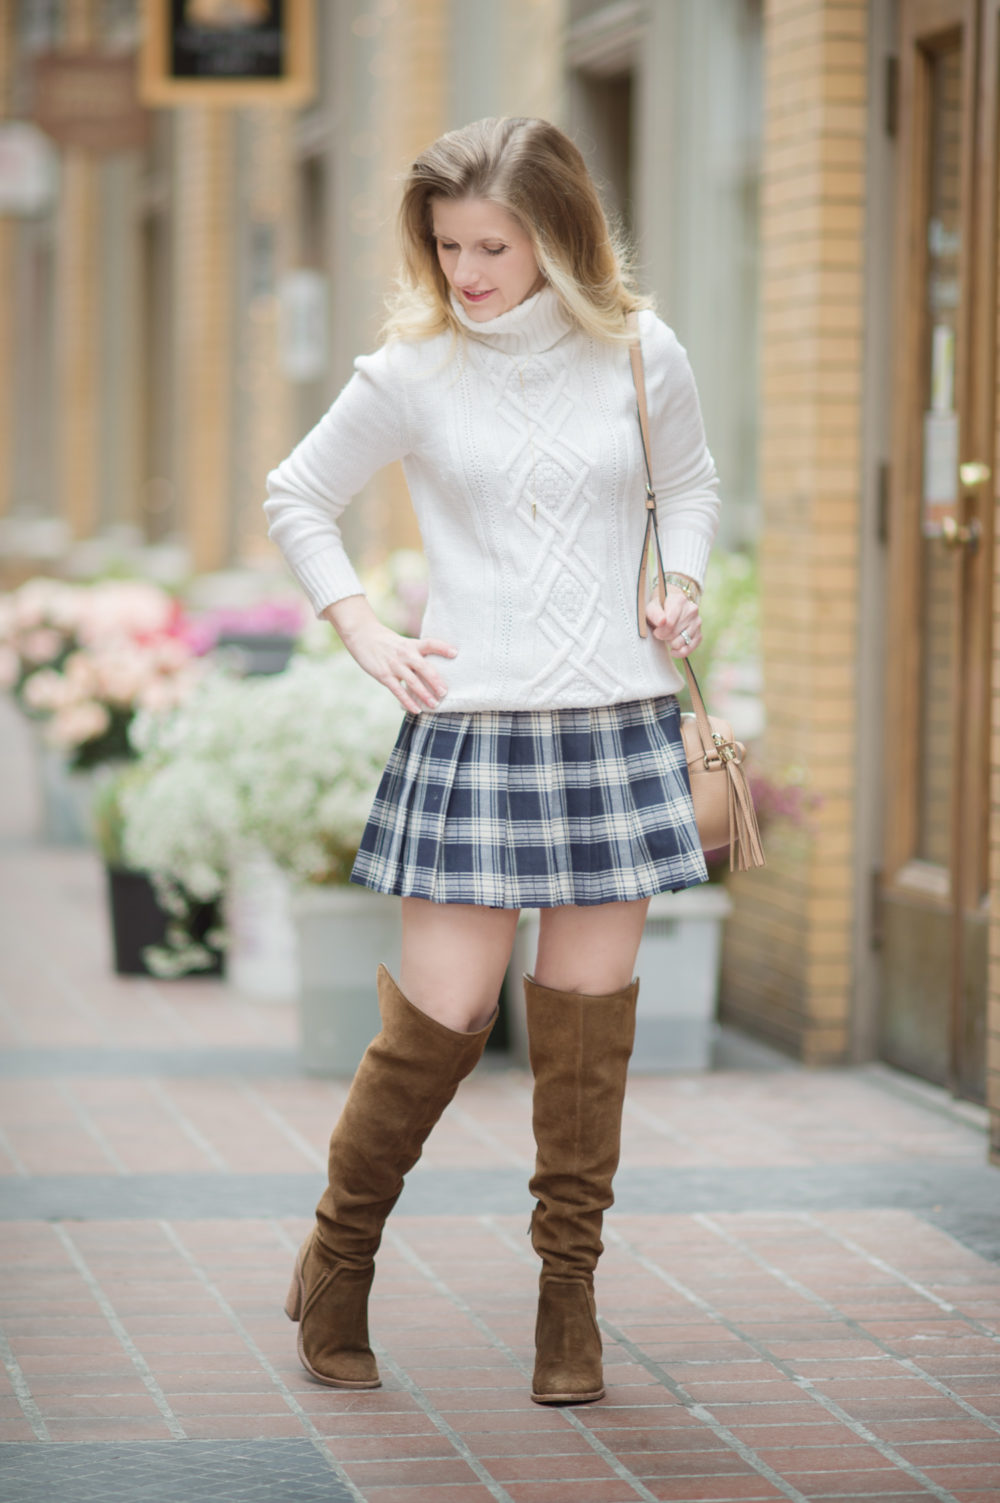 Petite Fashion and Style Blog | Fashion for Petite Women | J. Crew Cambridge Cable Crewneck Sweater